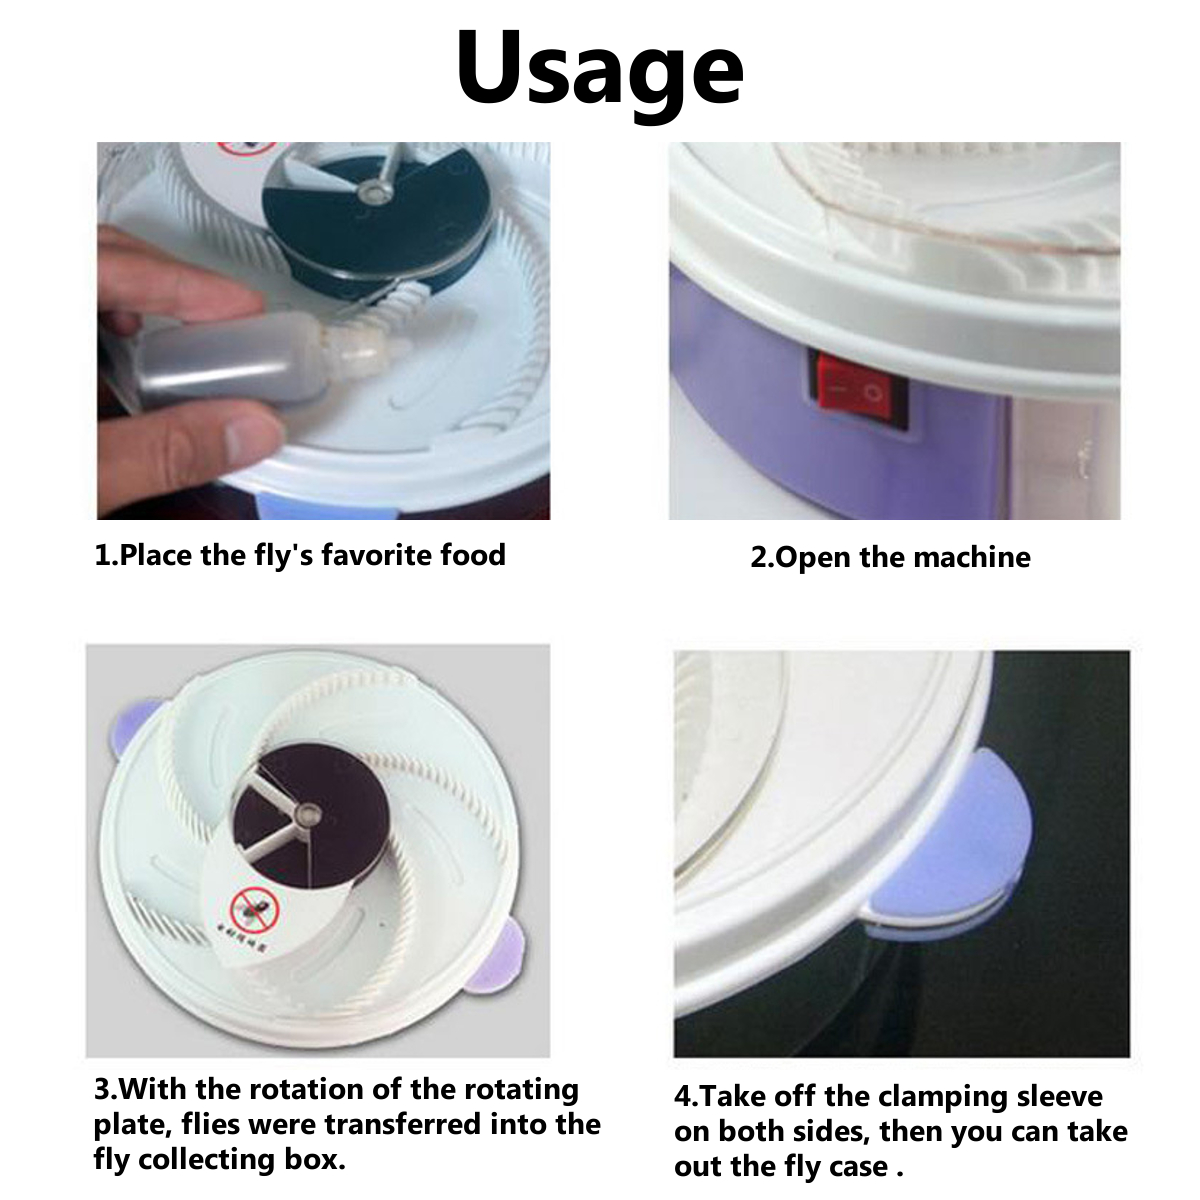 YE218 220-240V Eco-friendly Electrice Fly Trap Device Insect Mosquito Dispeller Buzz Killer Plate